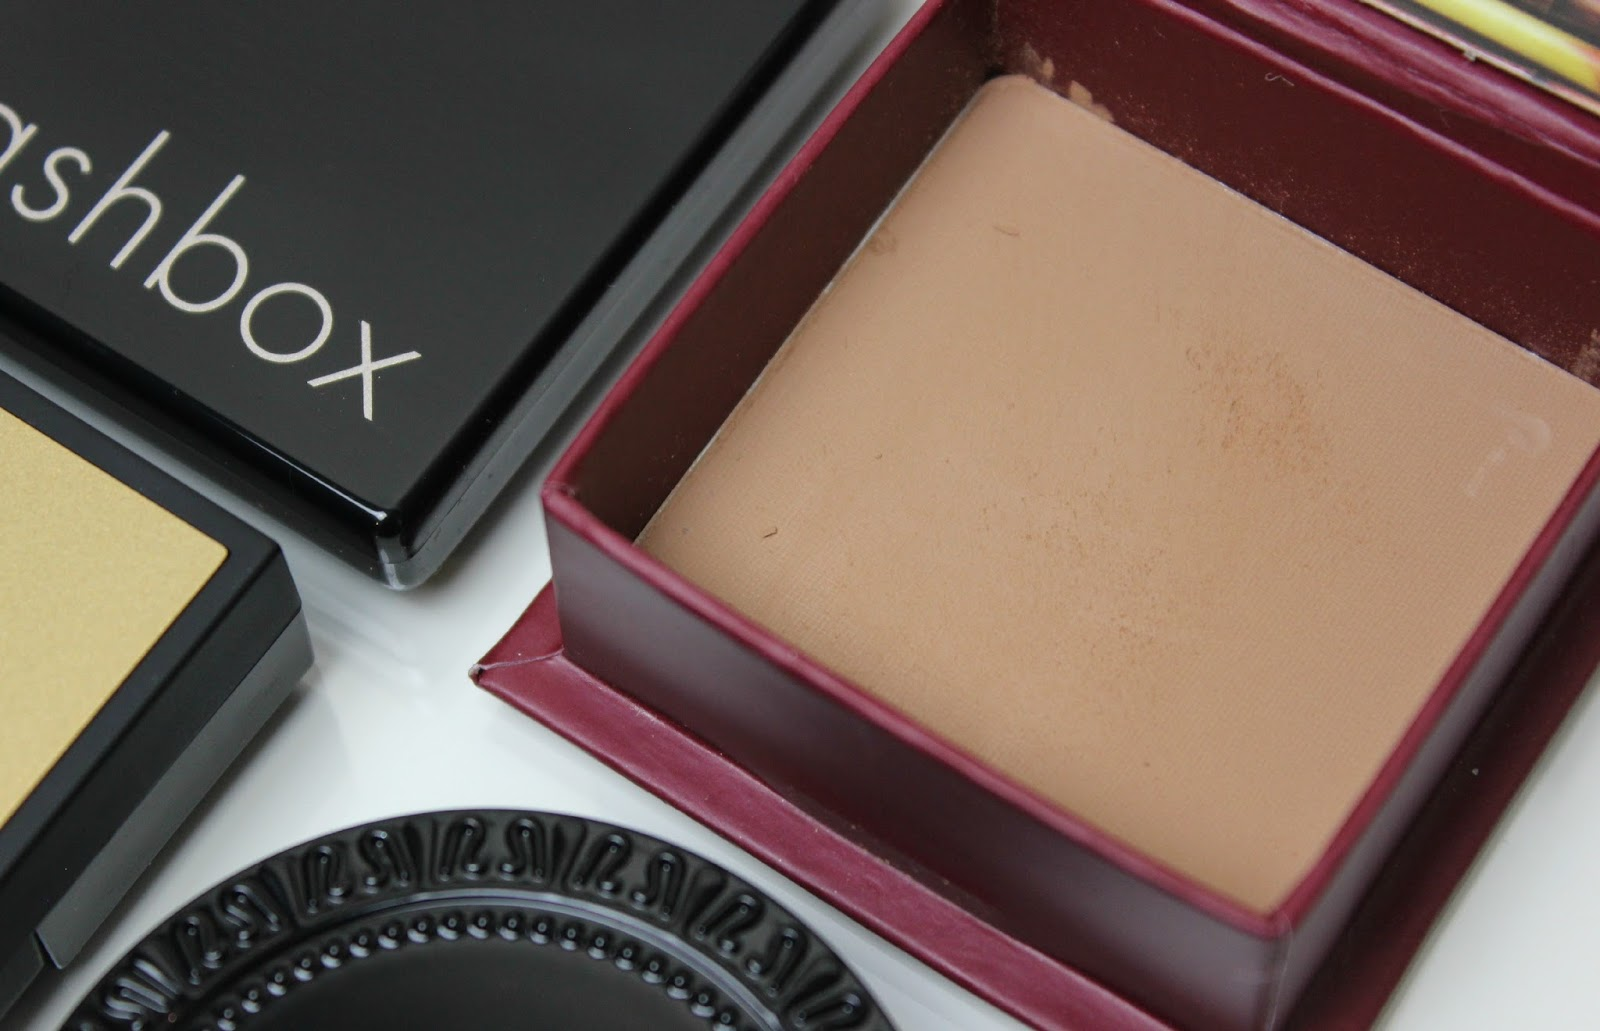 A picture of Benefit Hoola Bronzing Powder